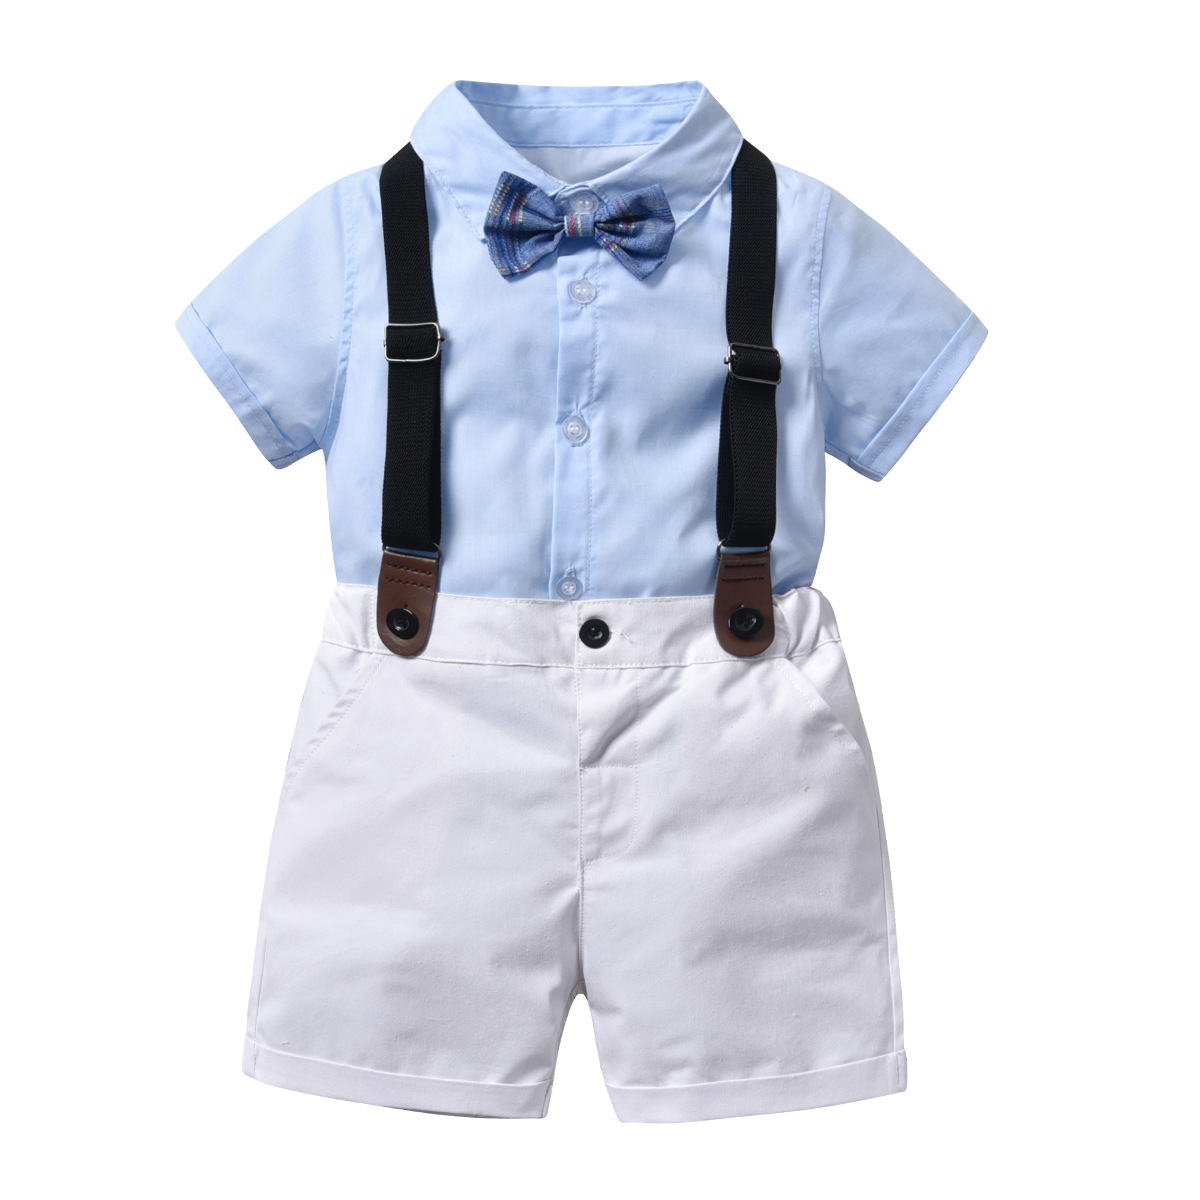 Summer Kids Suits Blazers for Boy Costum 2019 Baby Boys Shirt Overalls Suit Boys Formal Wedding Wear Cotton Children ClothingSummer Kids Suits Blazers for Boy Costum 2019 Baby Boys Shirt Overalls Suit Boys Formal Wedding Wear Cotton Children Clothing